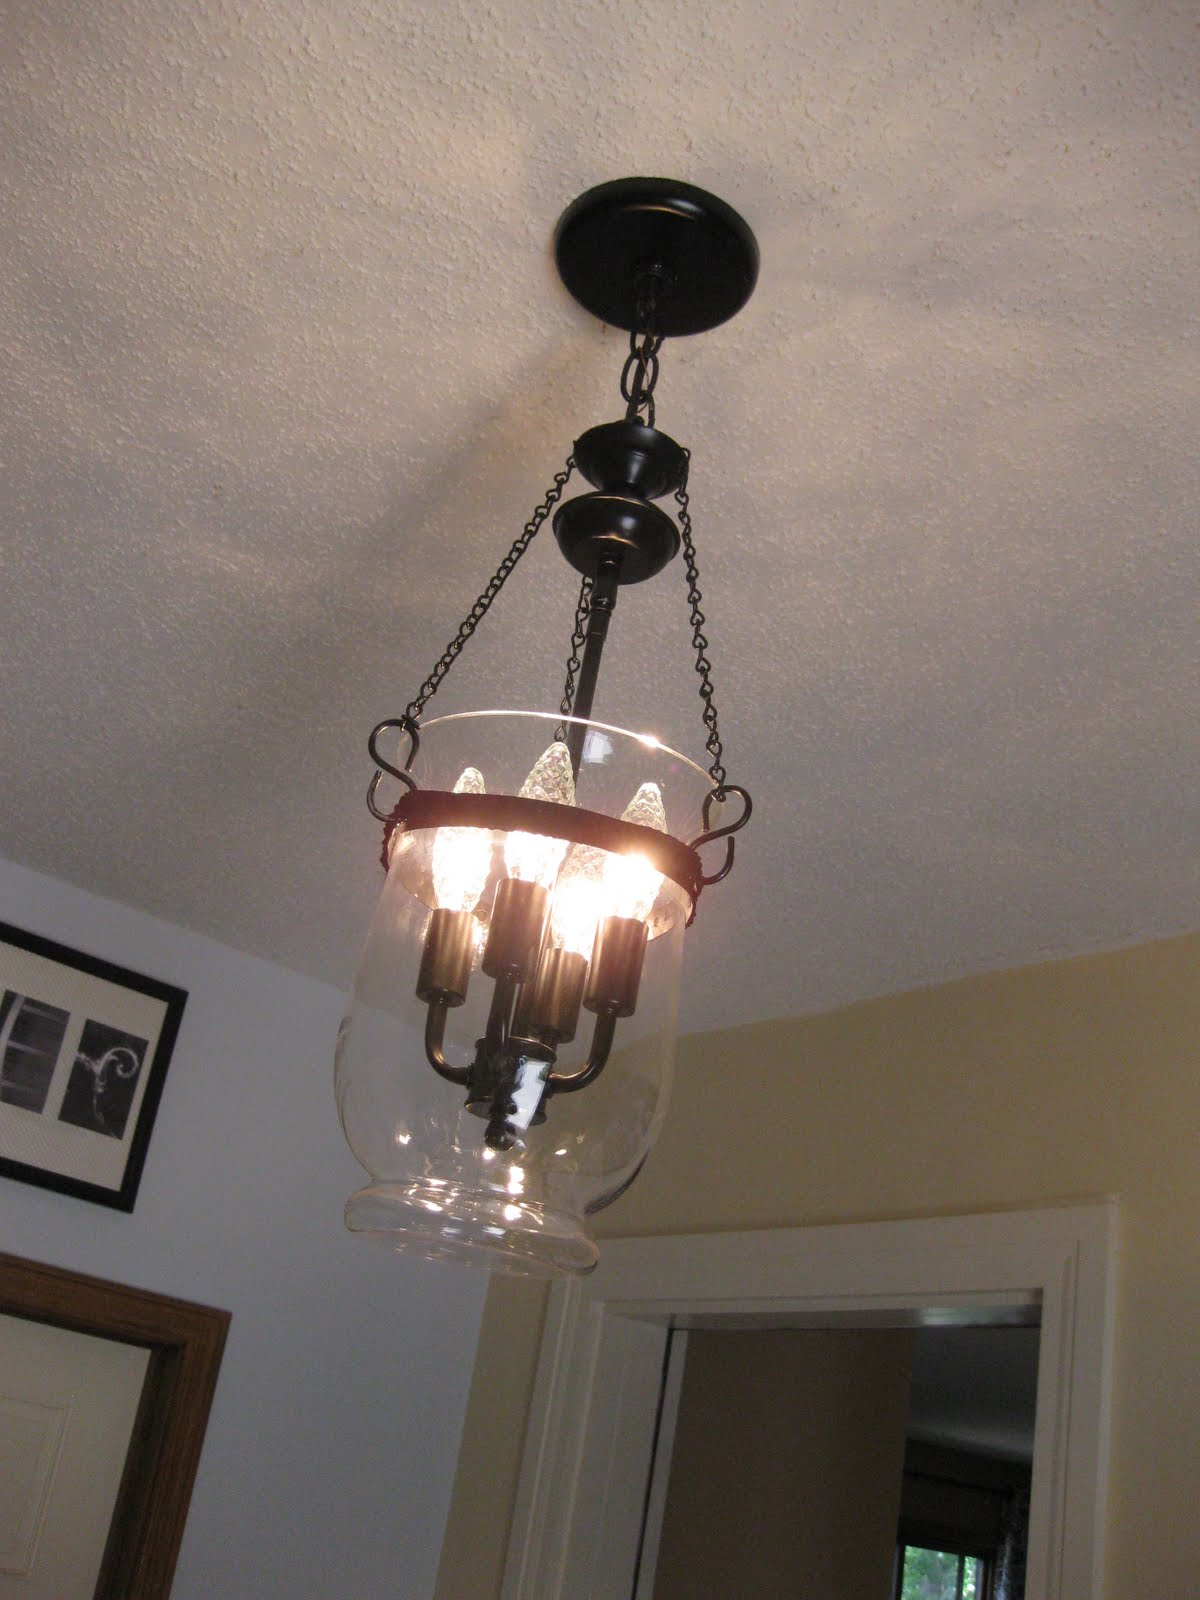 Pottery barn celeste chandelier - Pottery Barn Celeste Chandelier 44